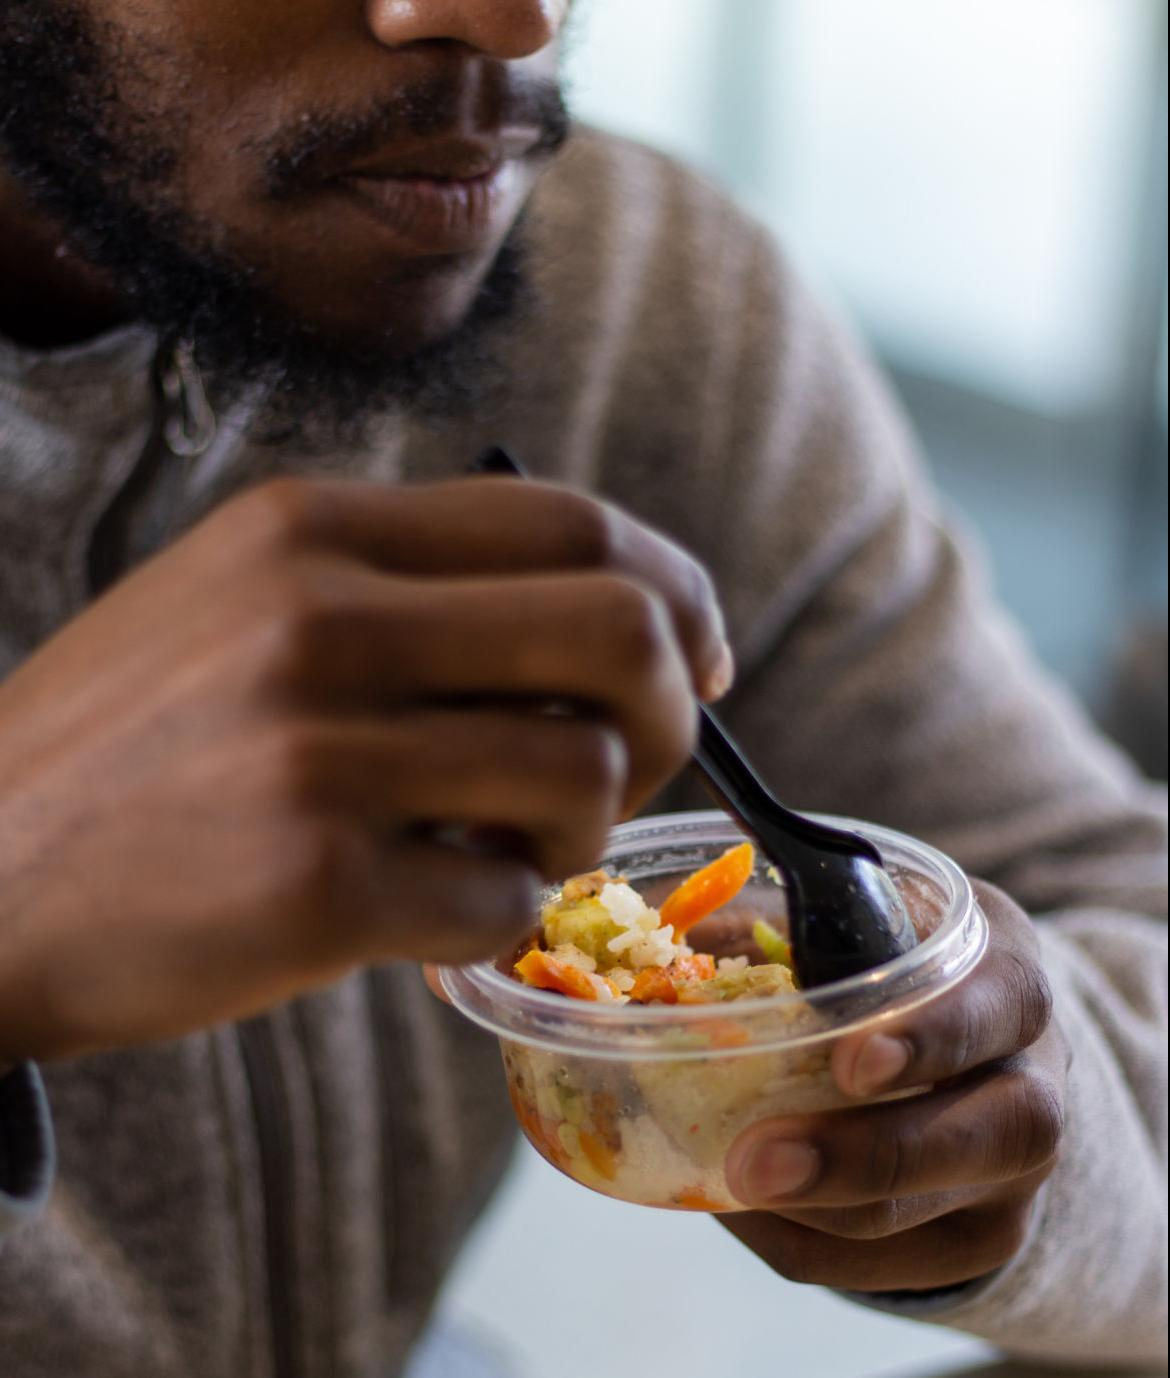 How meal prepping can positively impact daily life